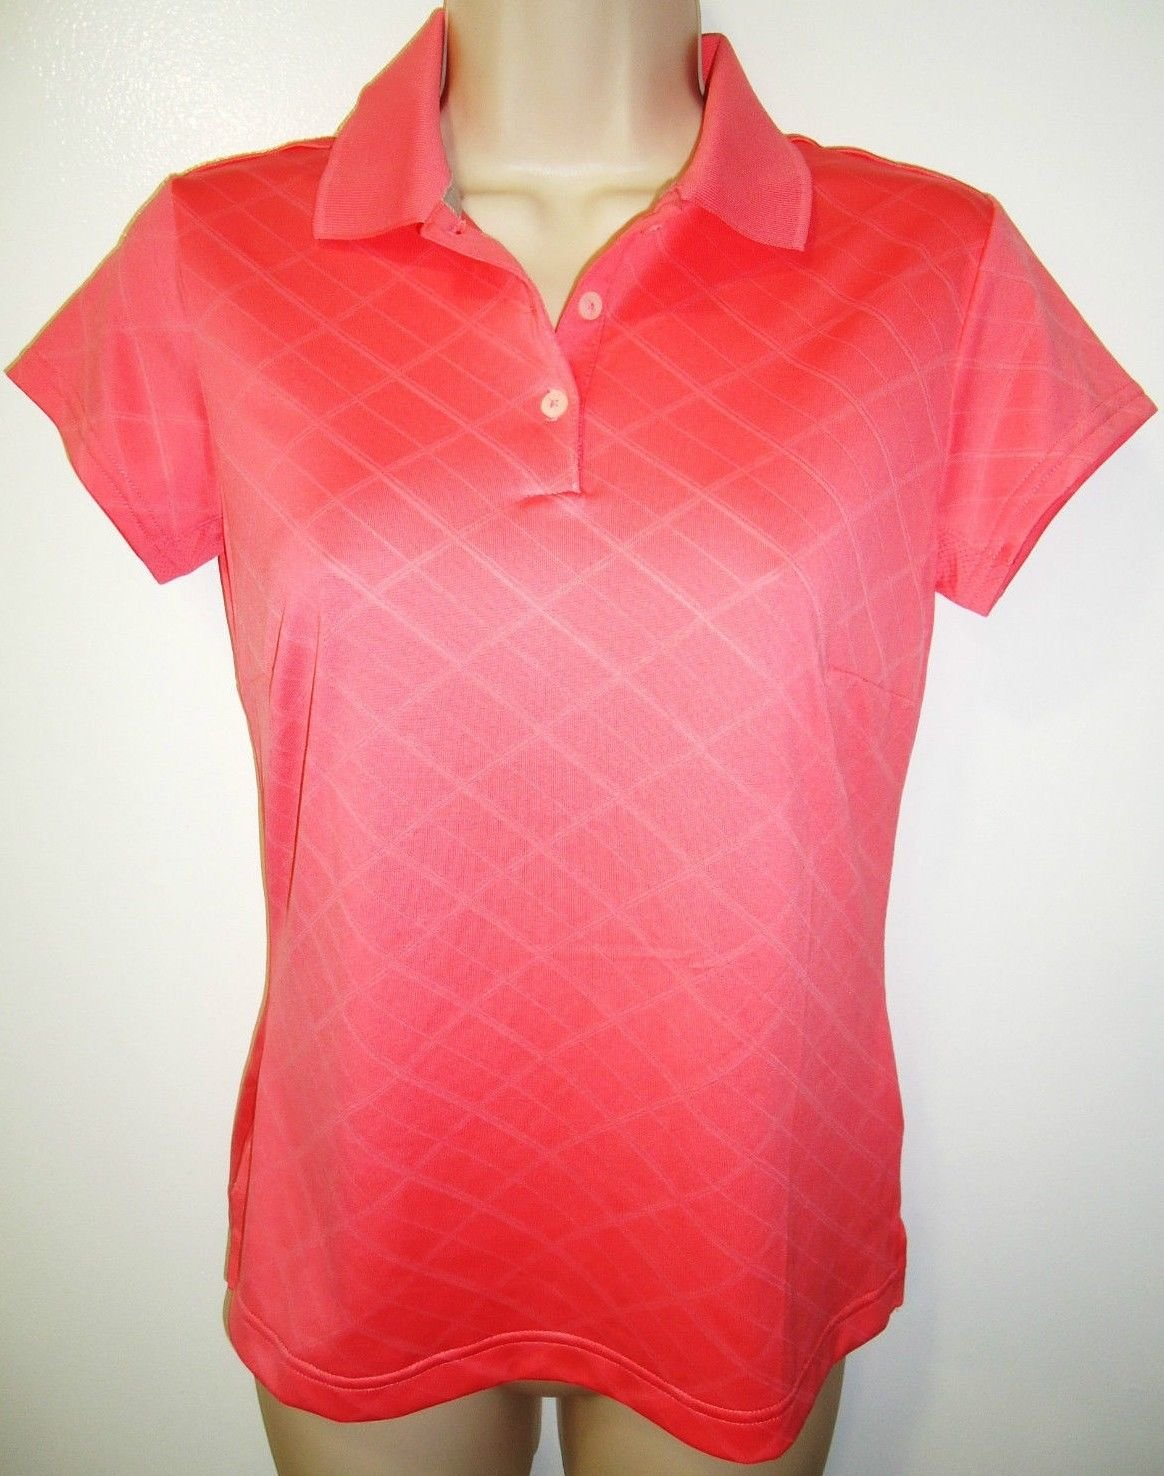 ADIDAS - XS - CLIMACOOL - PEACH - GOLF - TOP - POLO - SHIRT - LPGA - BRAND NEW